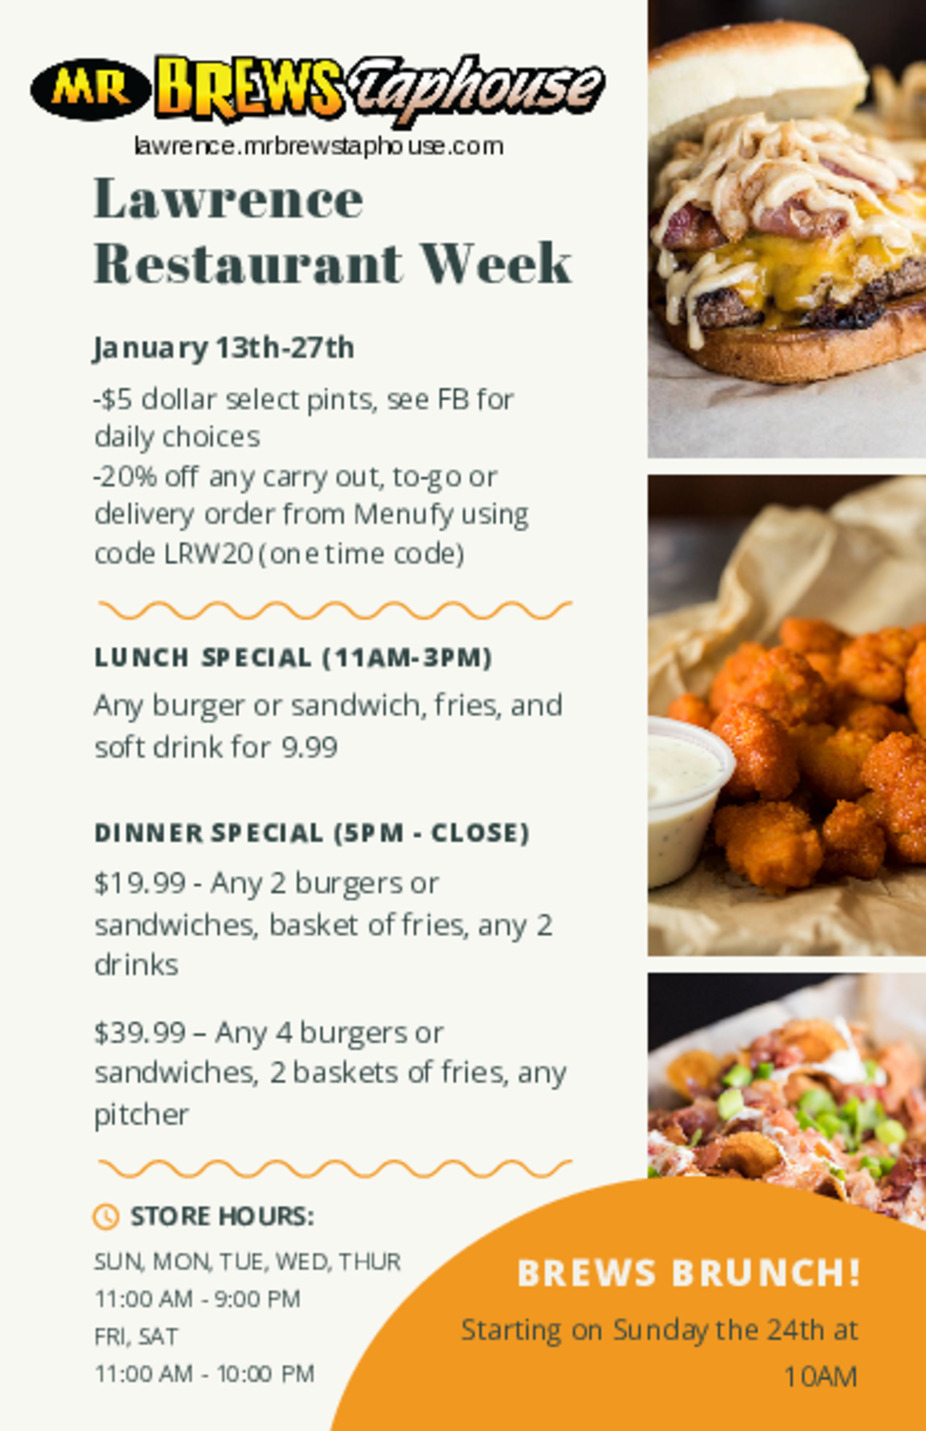 Lawrence Restaurant Week event photo